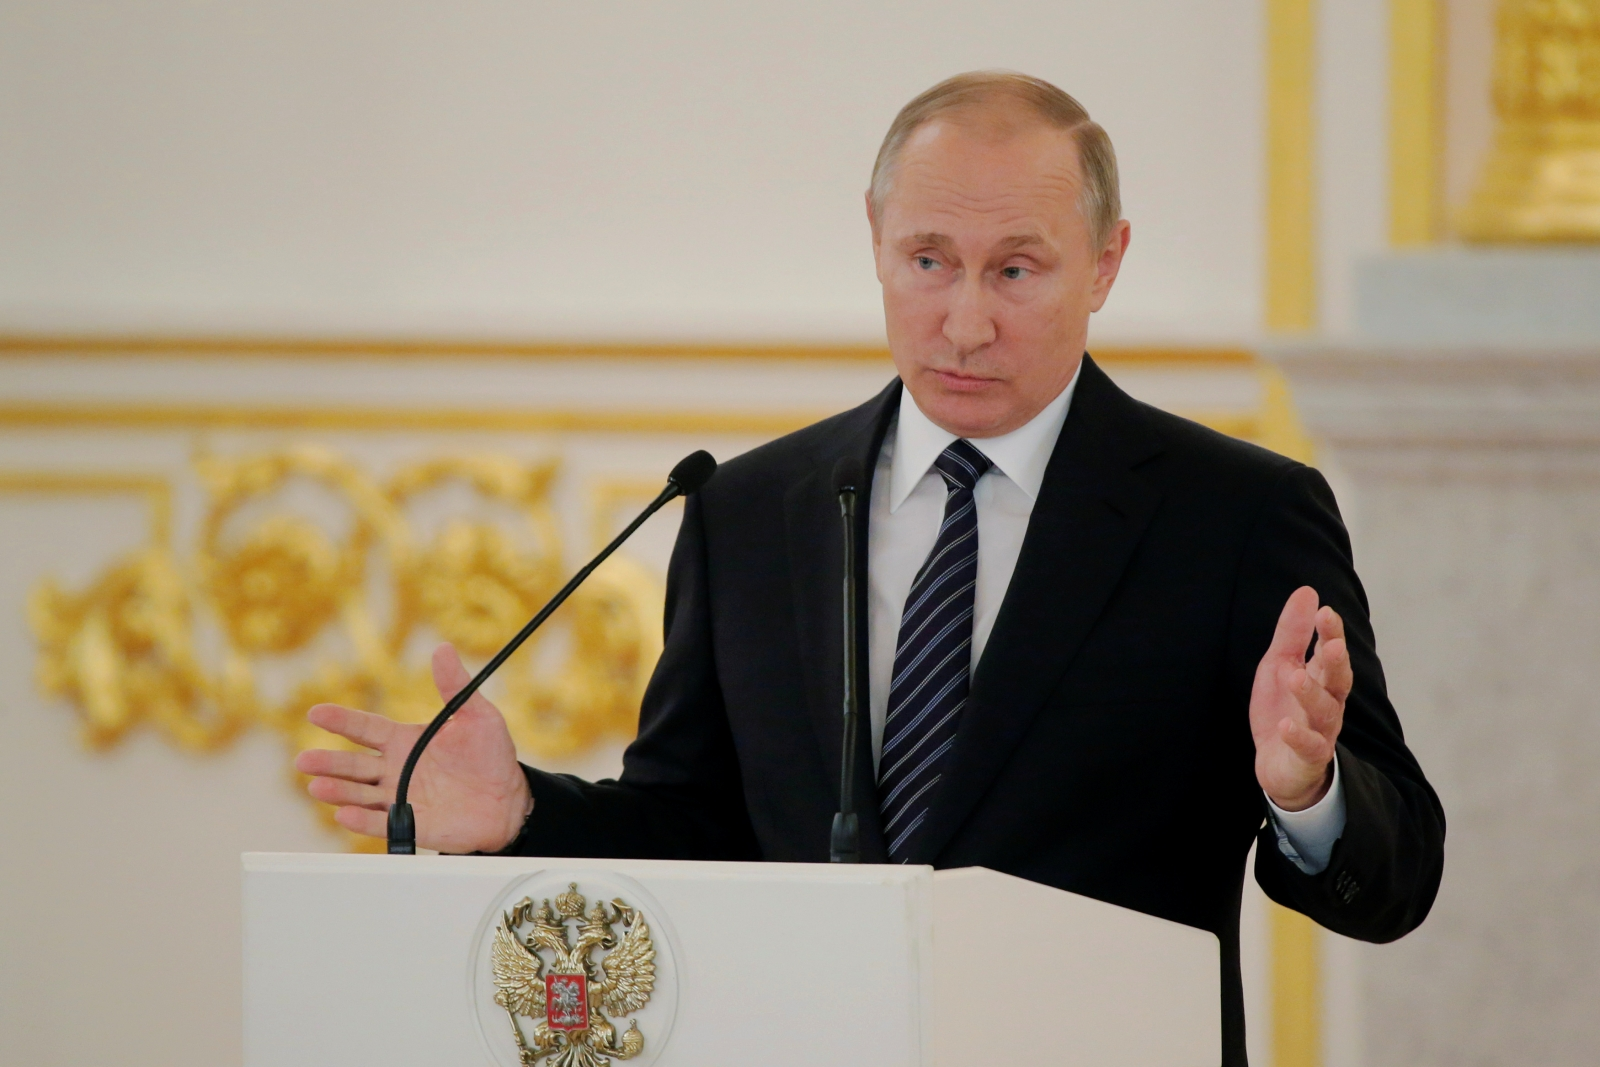 Putin on DNC hack: 'Does it even matter who hacked this data?'